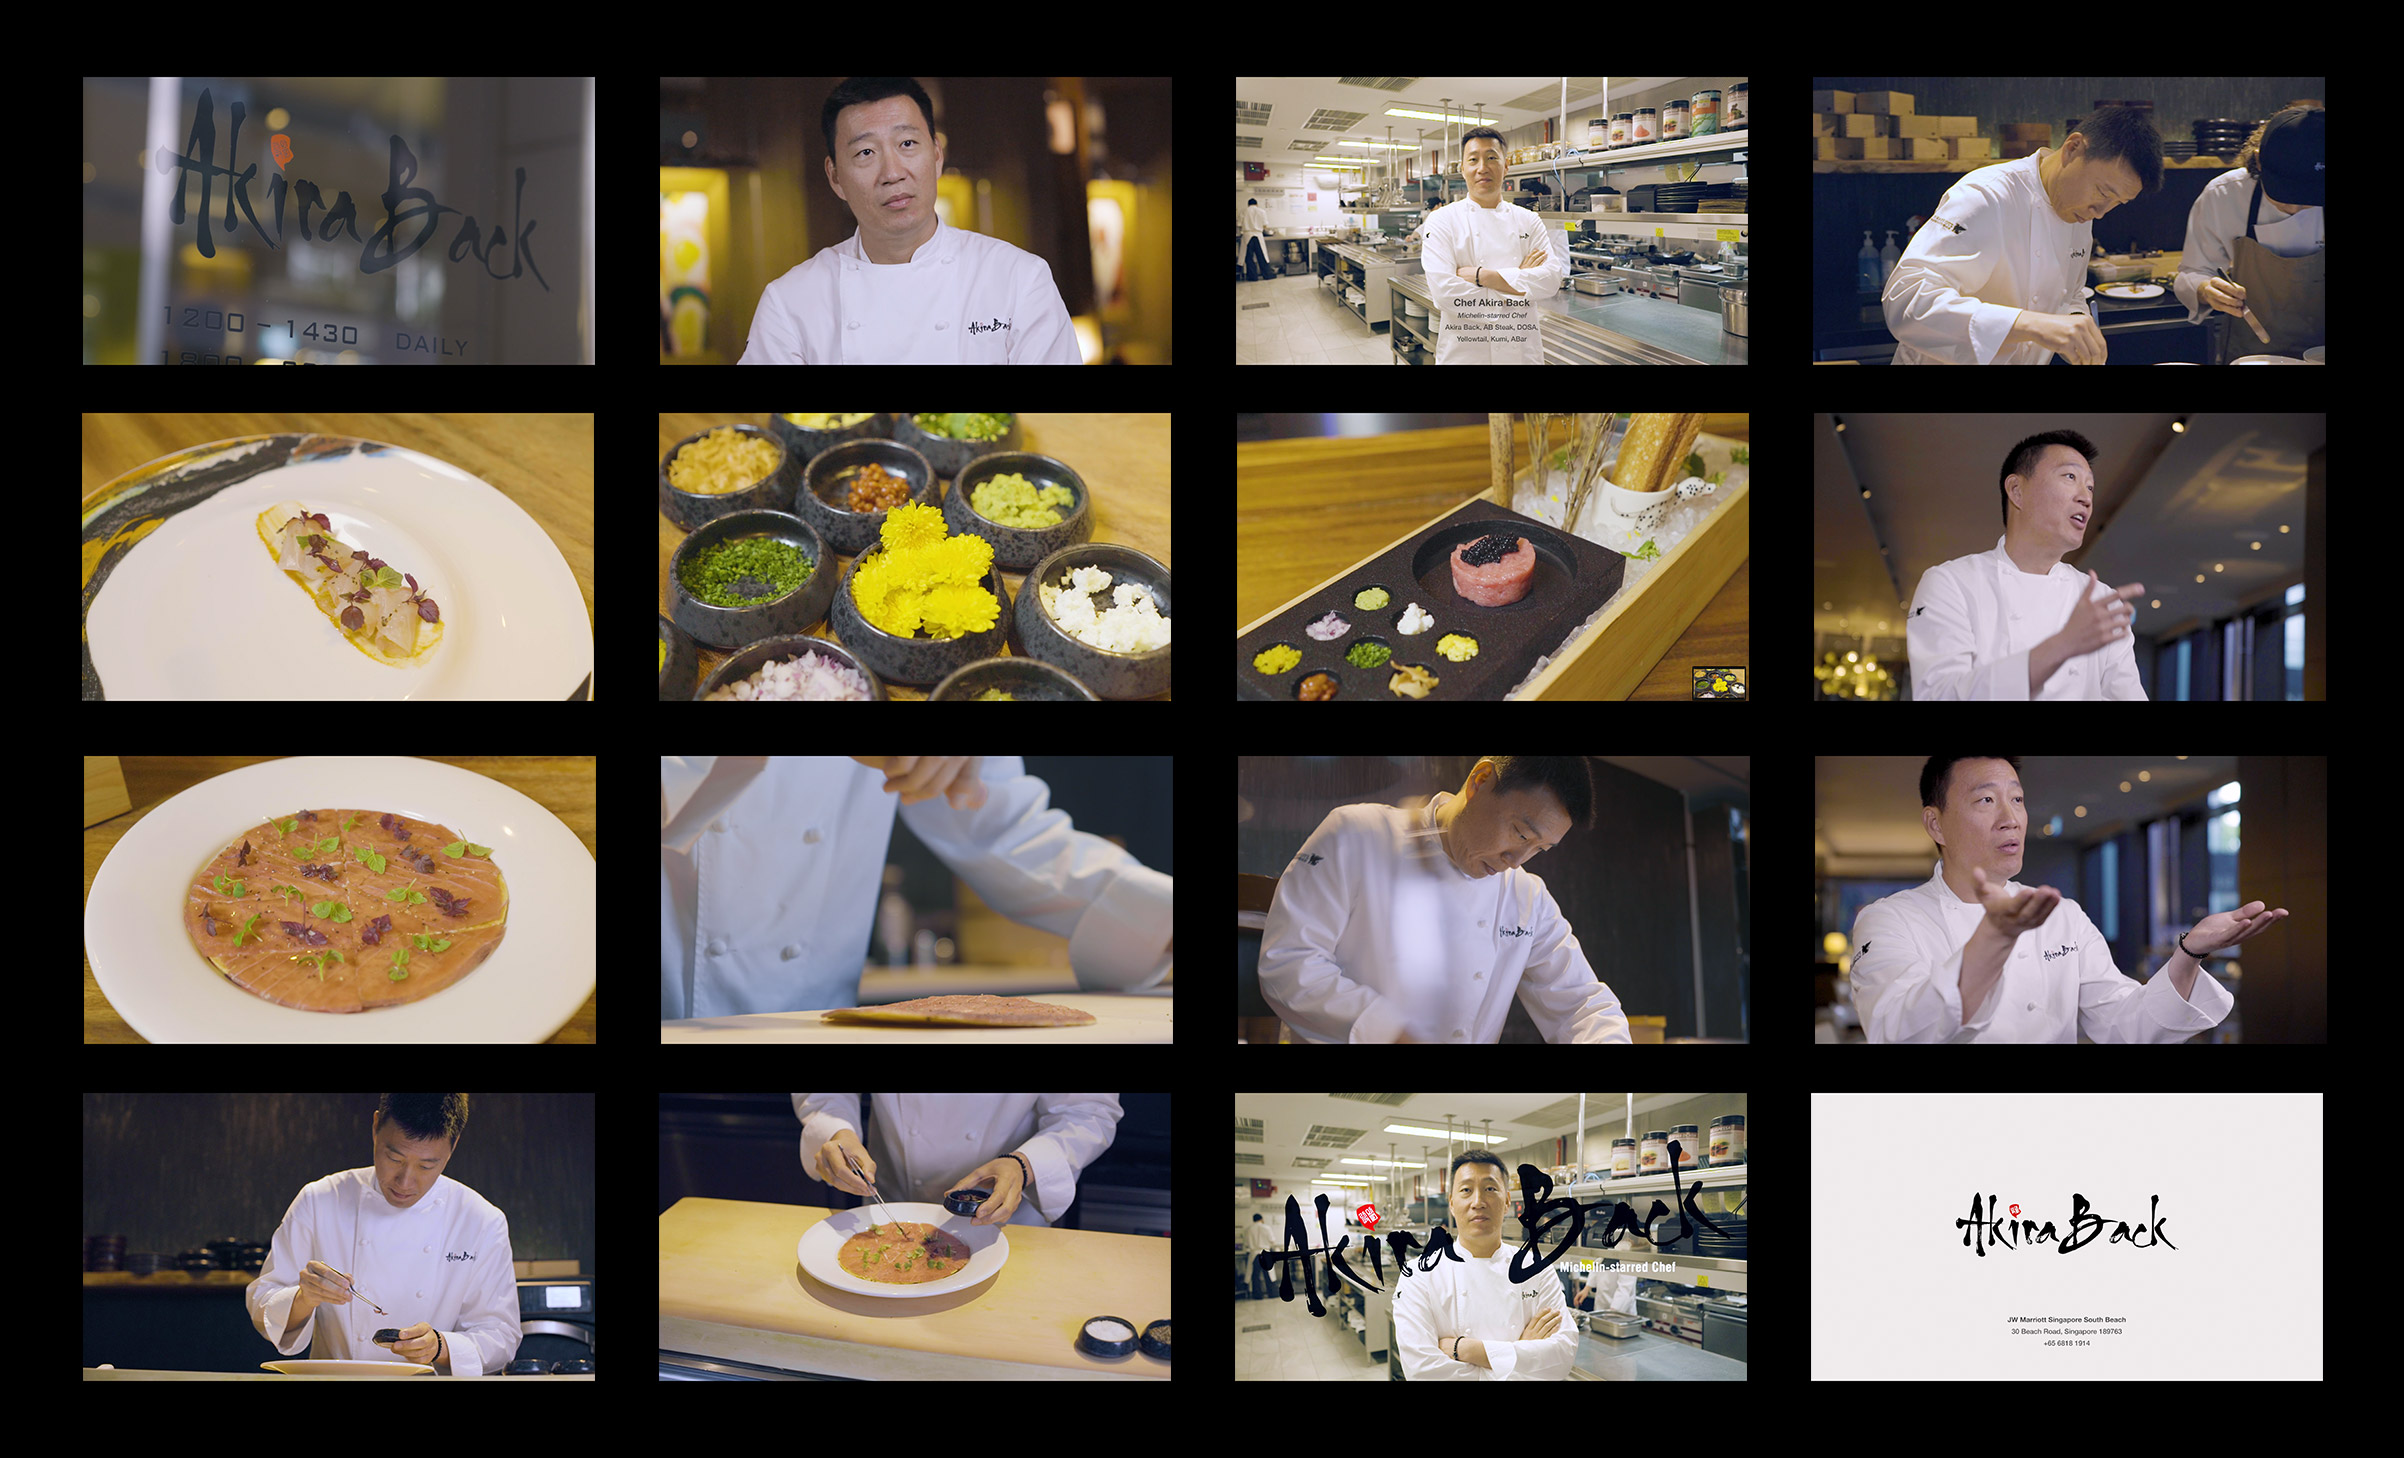 Michelin Starred Chef Akira Back video portrait